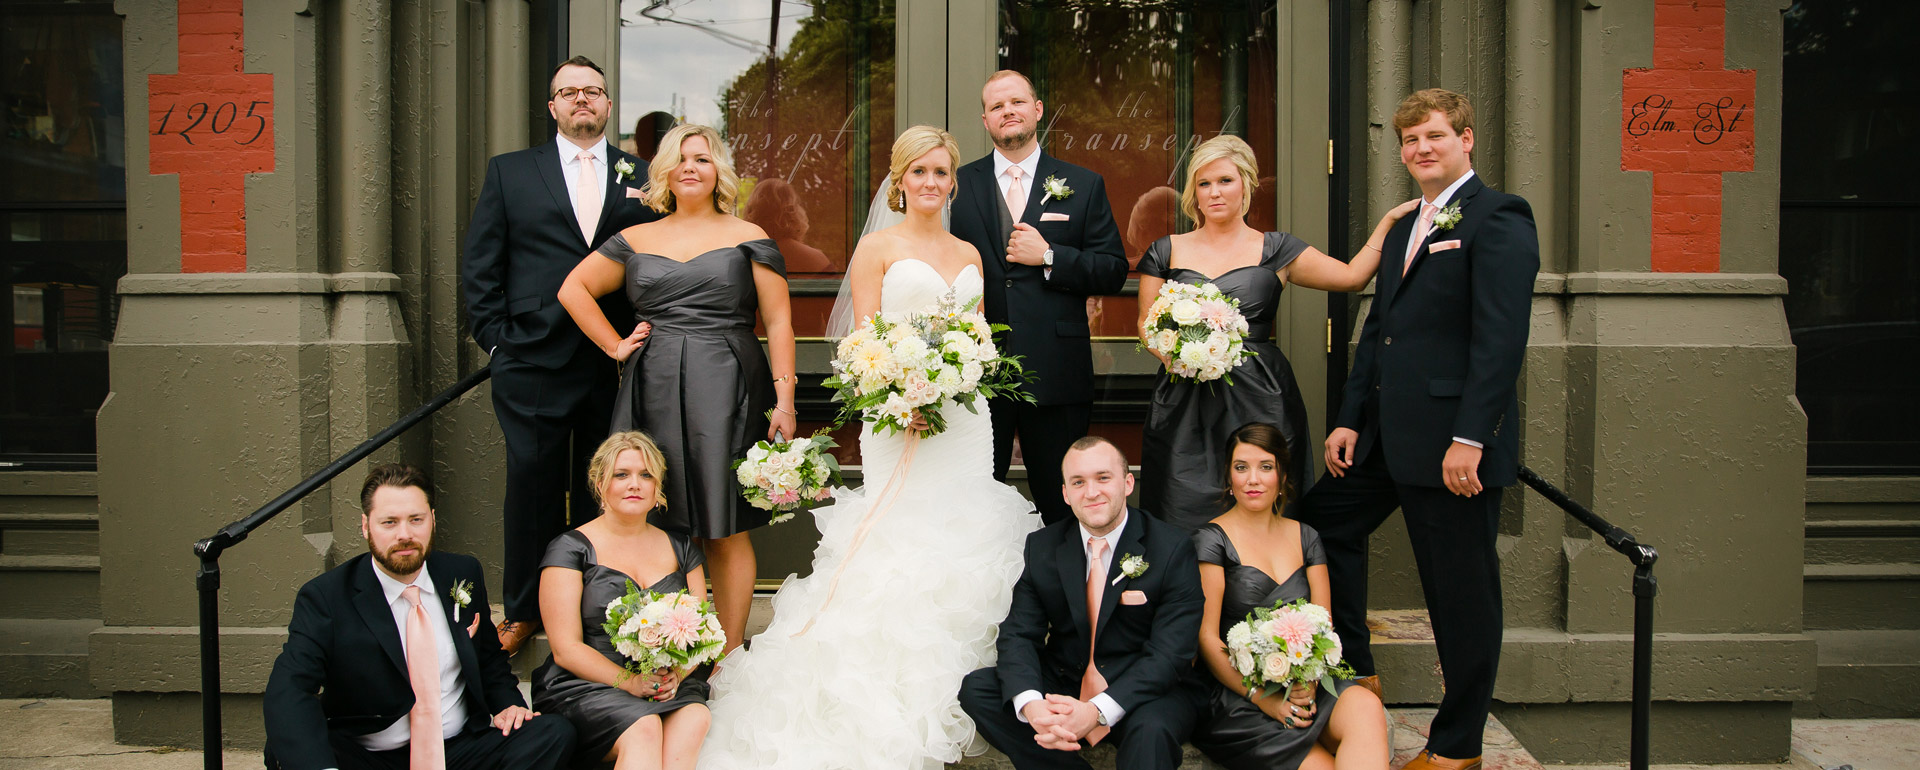 Bridal Party on the Steps of The Transept